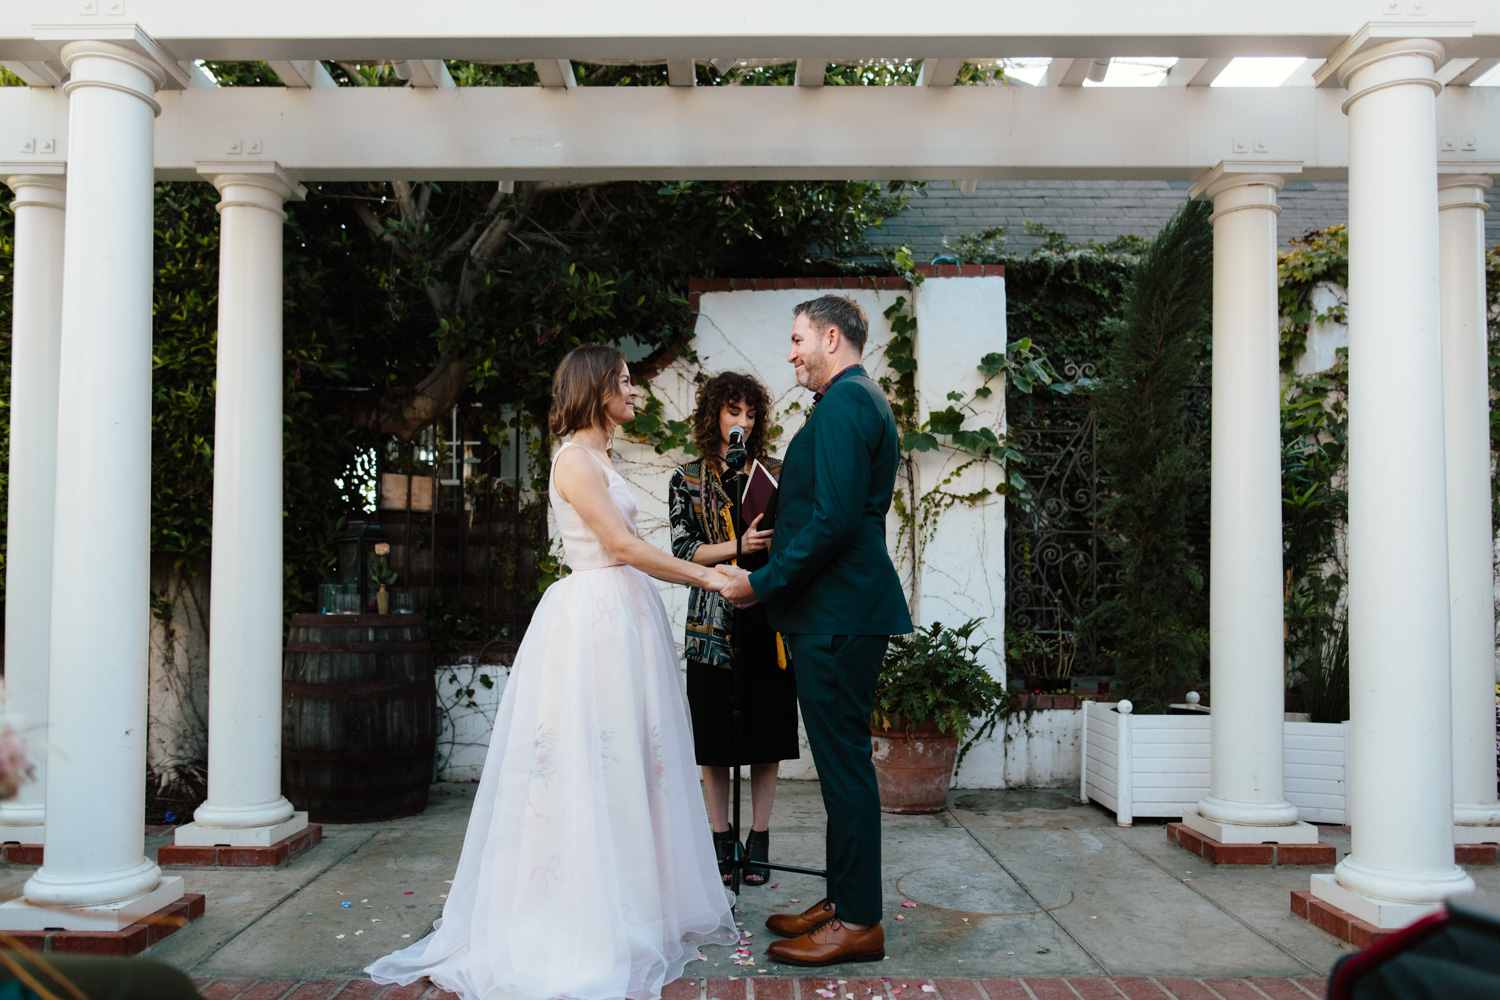 Riverside County Wedding Photographer, Five Crowns - The Gathering Season x weareleoandkat 038.JPG